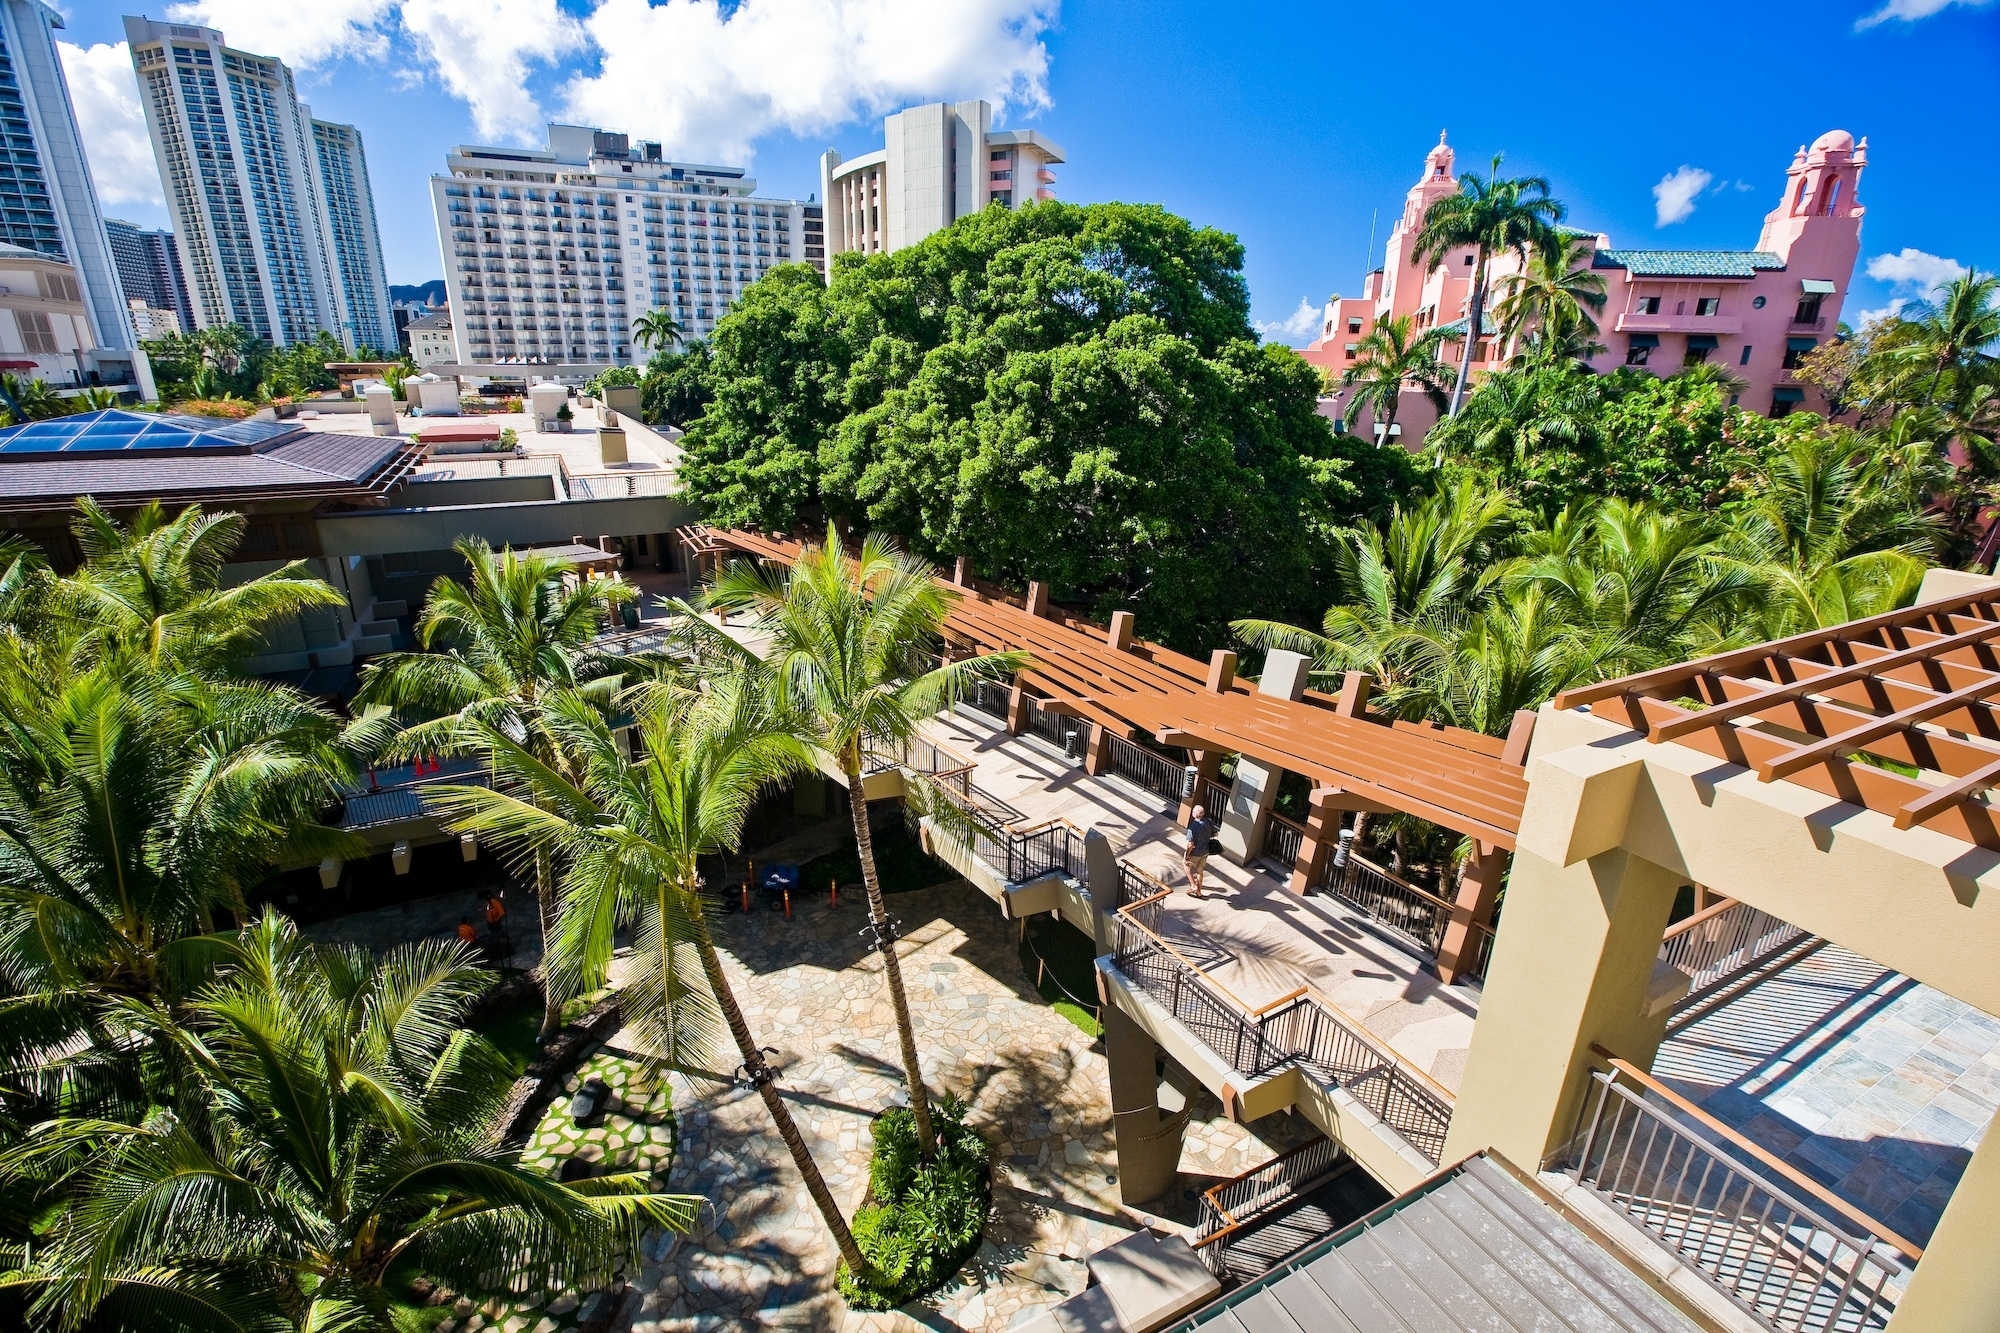 Royal Hawaiian Center - Open spaces and lush gardens in Royal Hawaiian Center